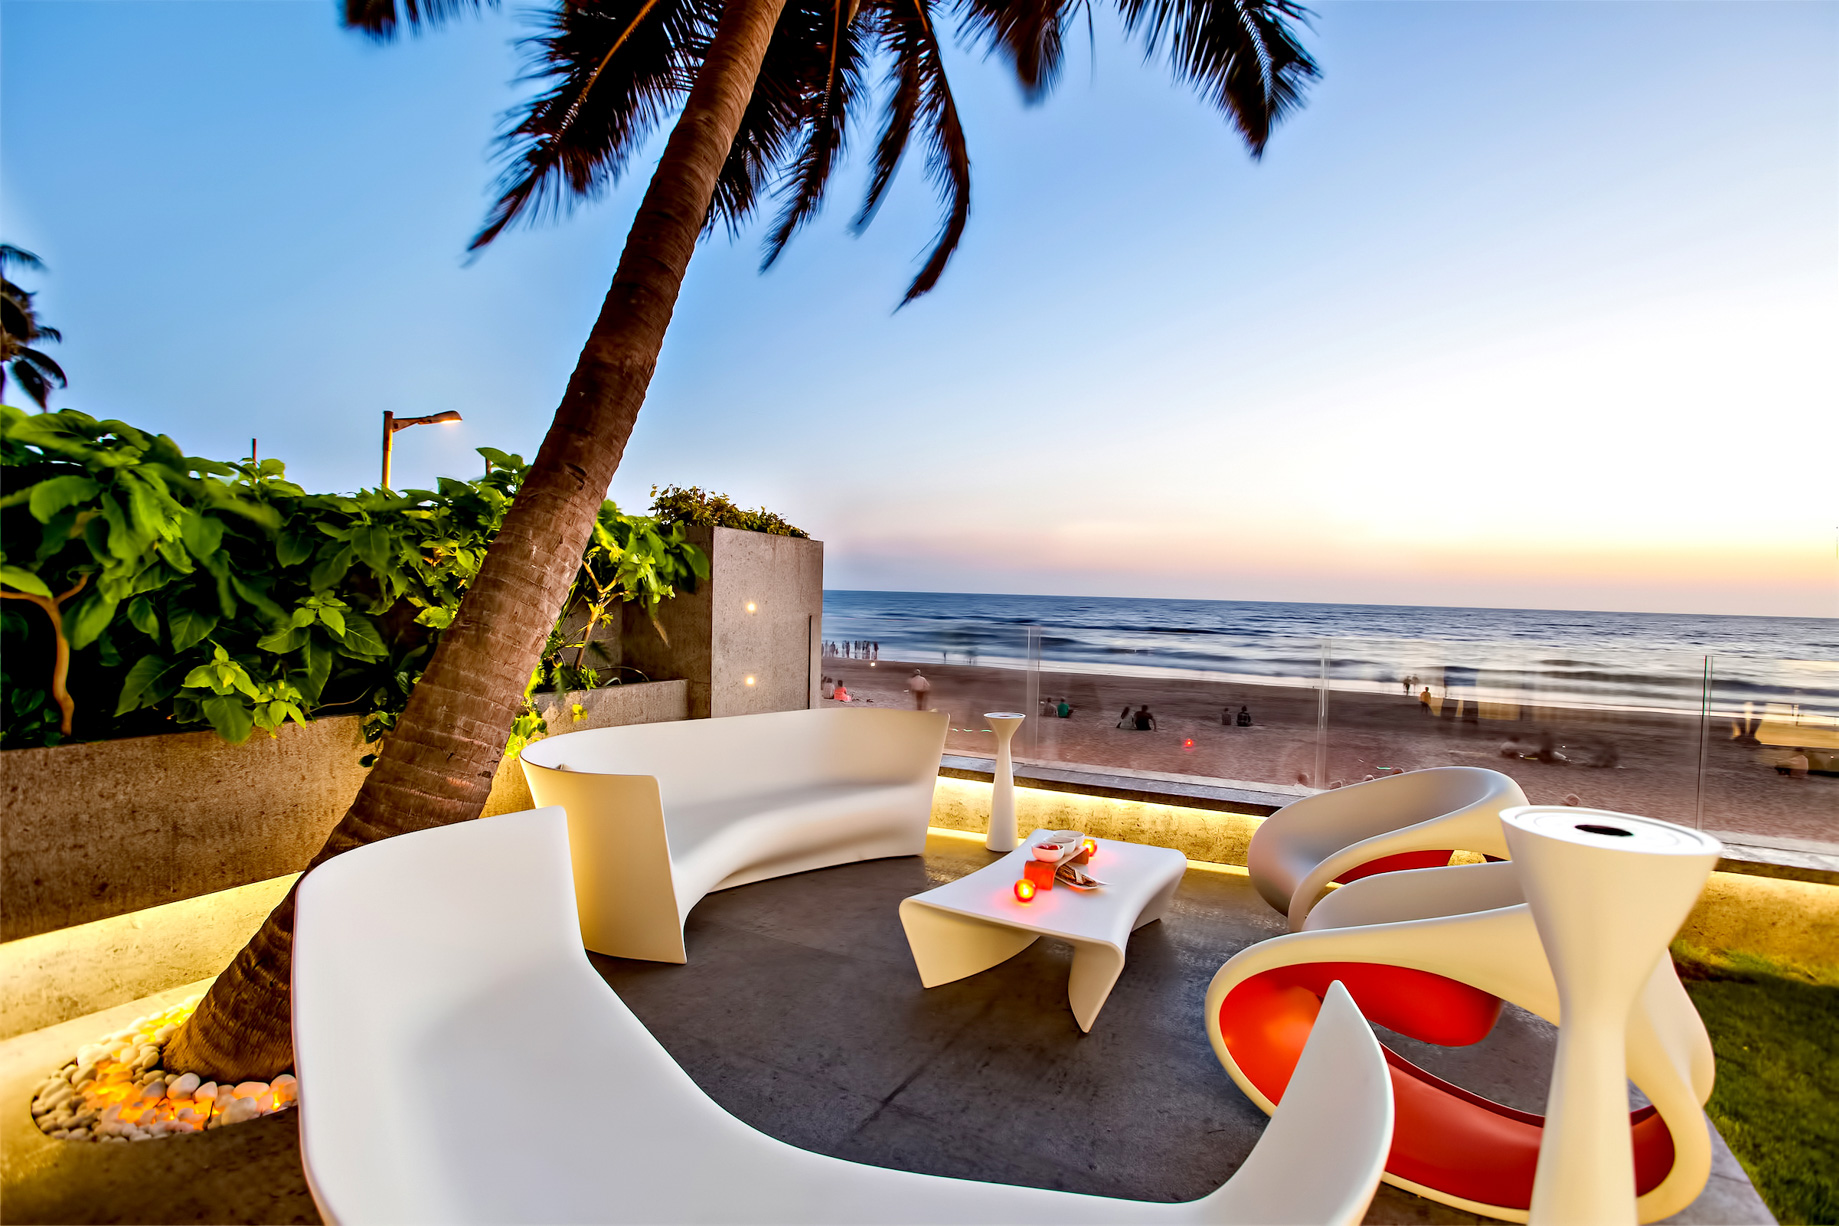 Juhu Beach Apartment - Mumbai, Maharashtra, India